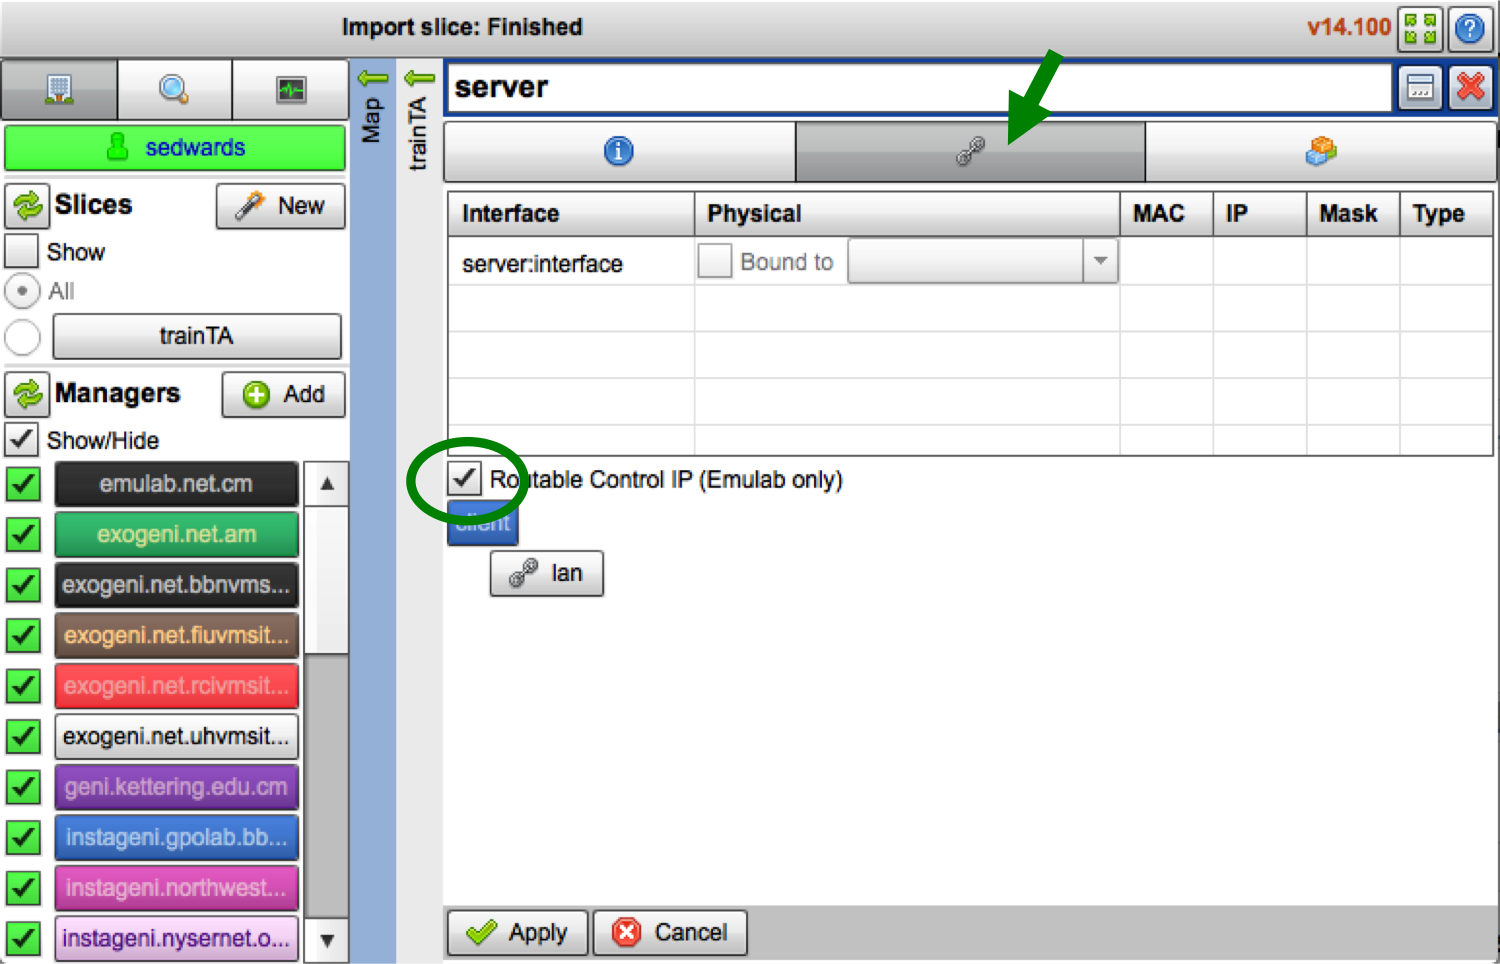 Select the 'Routable Control IP' button